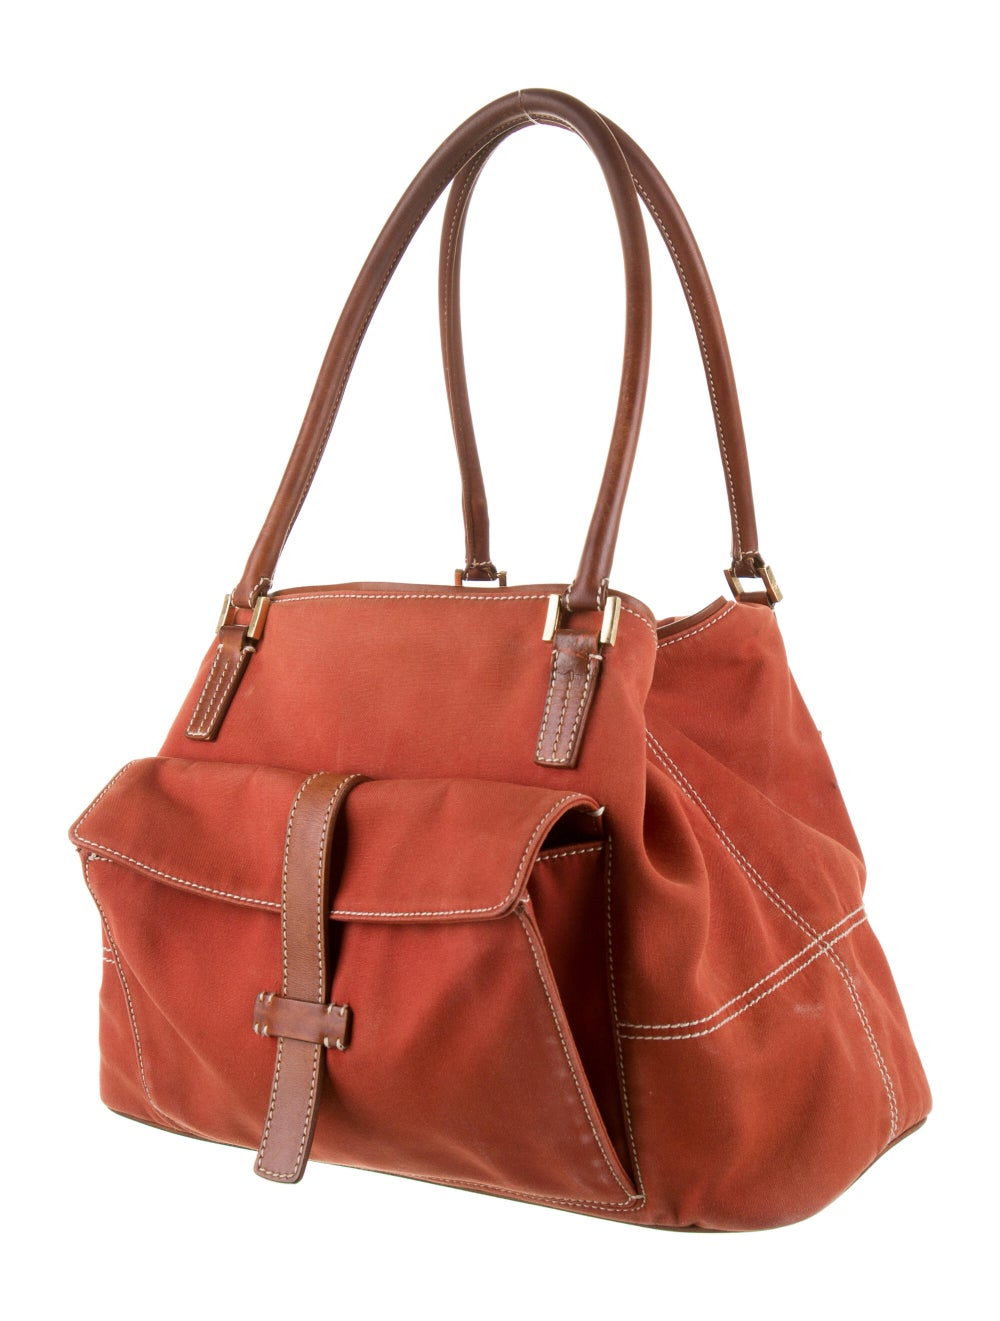 Loro Piana Globe Leather-Trimmed Tote Brown - image 3